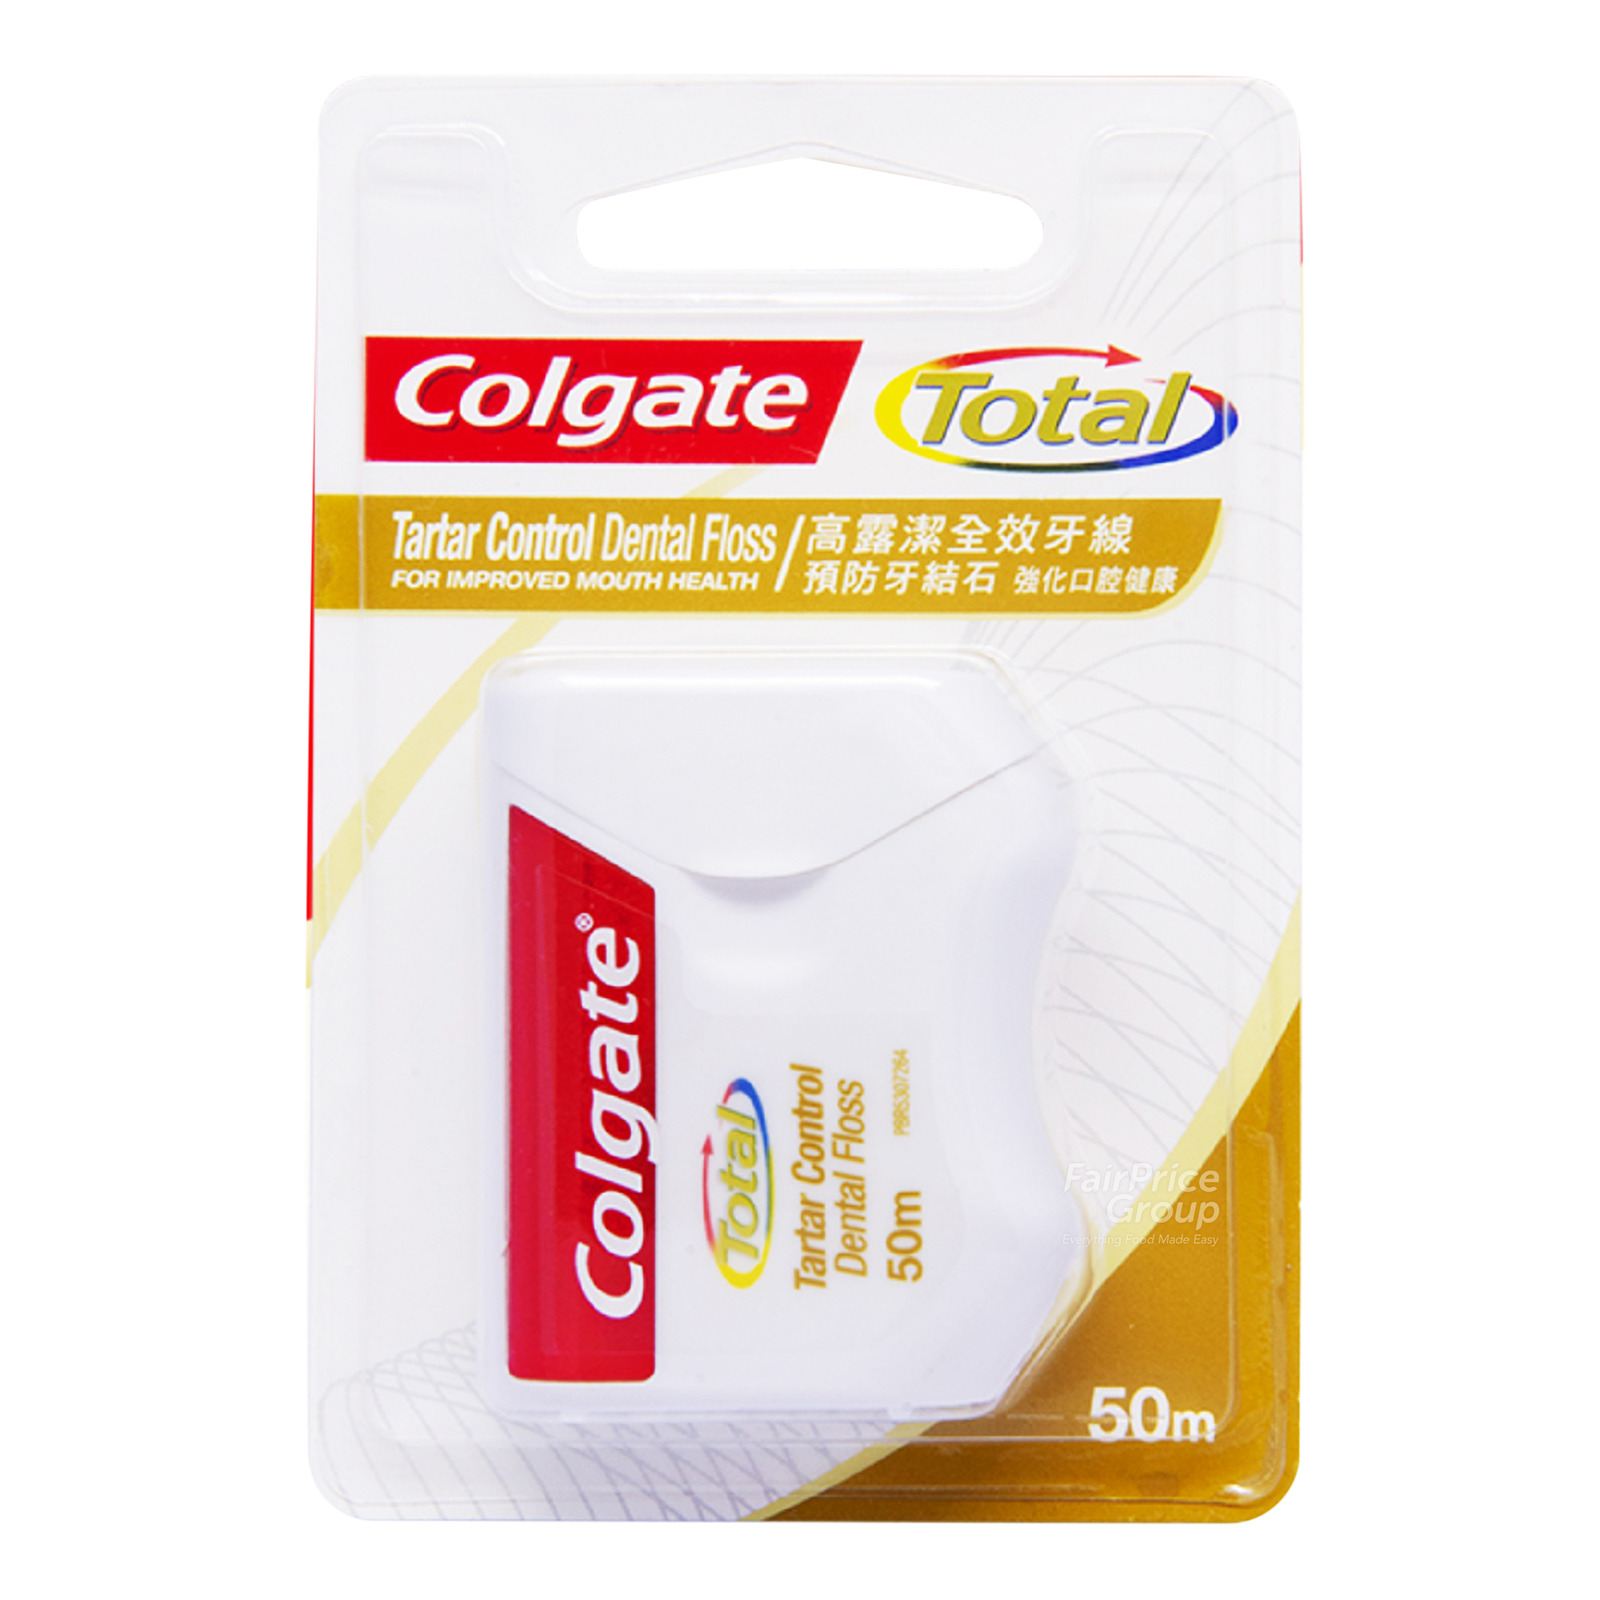 Colgate Total Tartar Control Dental Floss - 50m